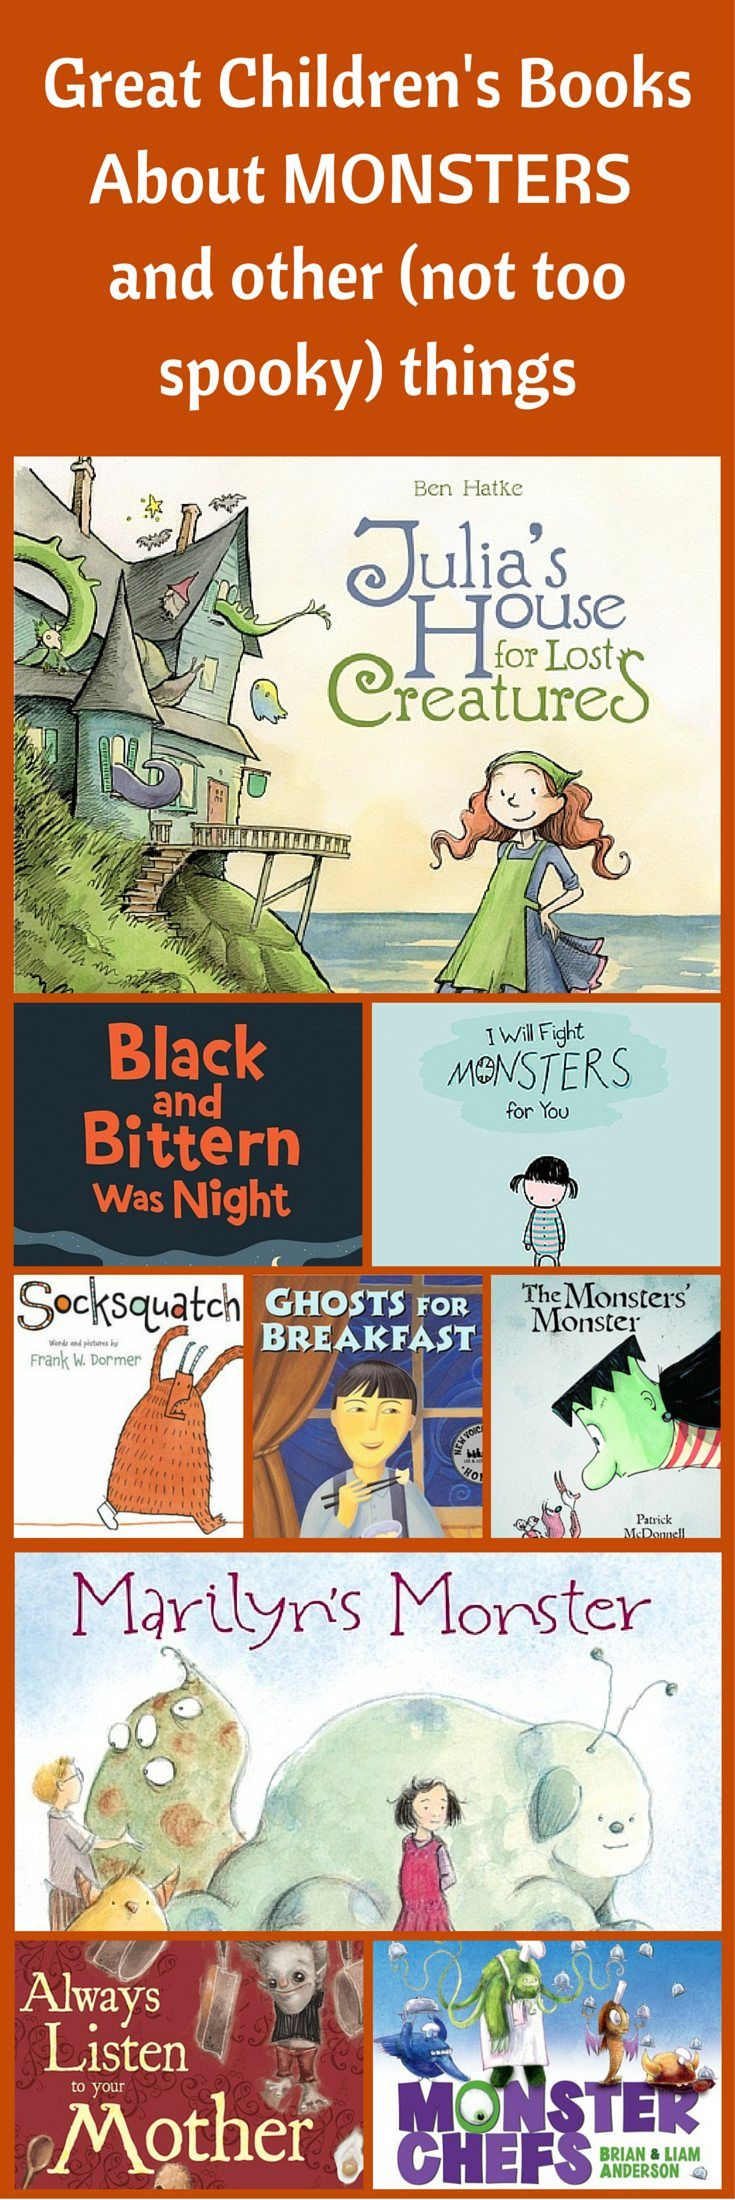 Spooky and Monster Books for Kids - great books for Halloween or year round!  Children's book list by Planet Jinxatron